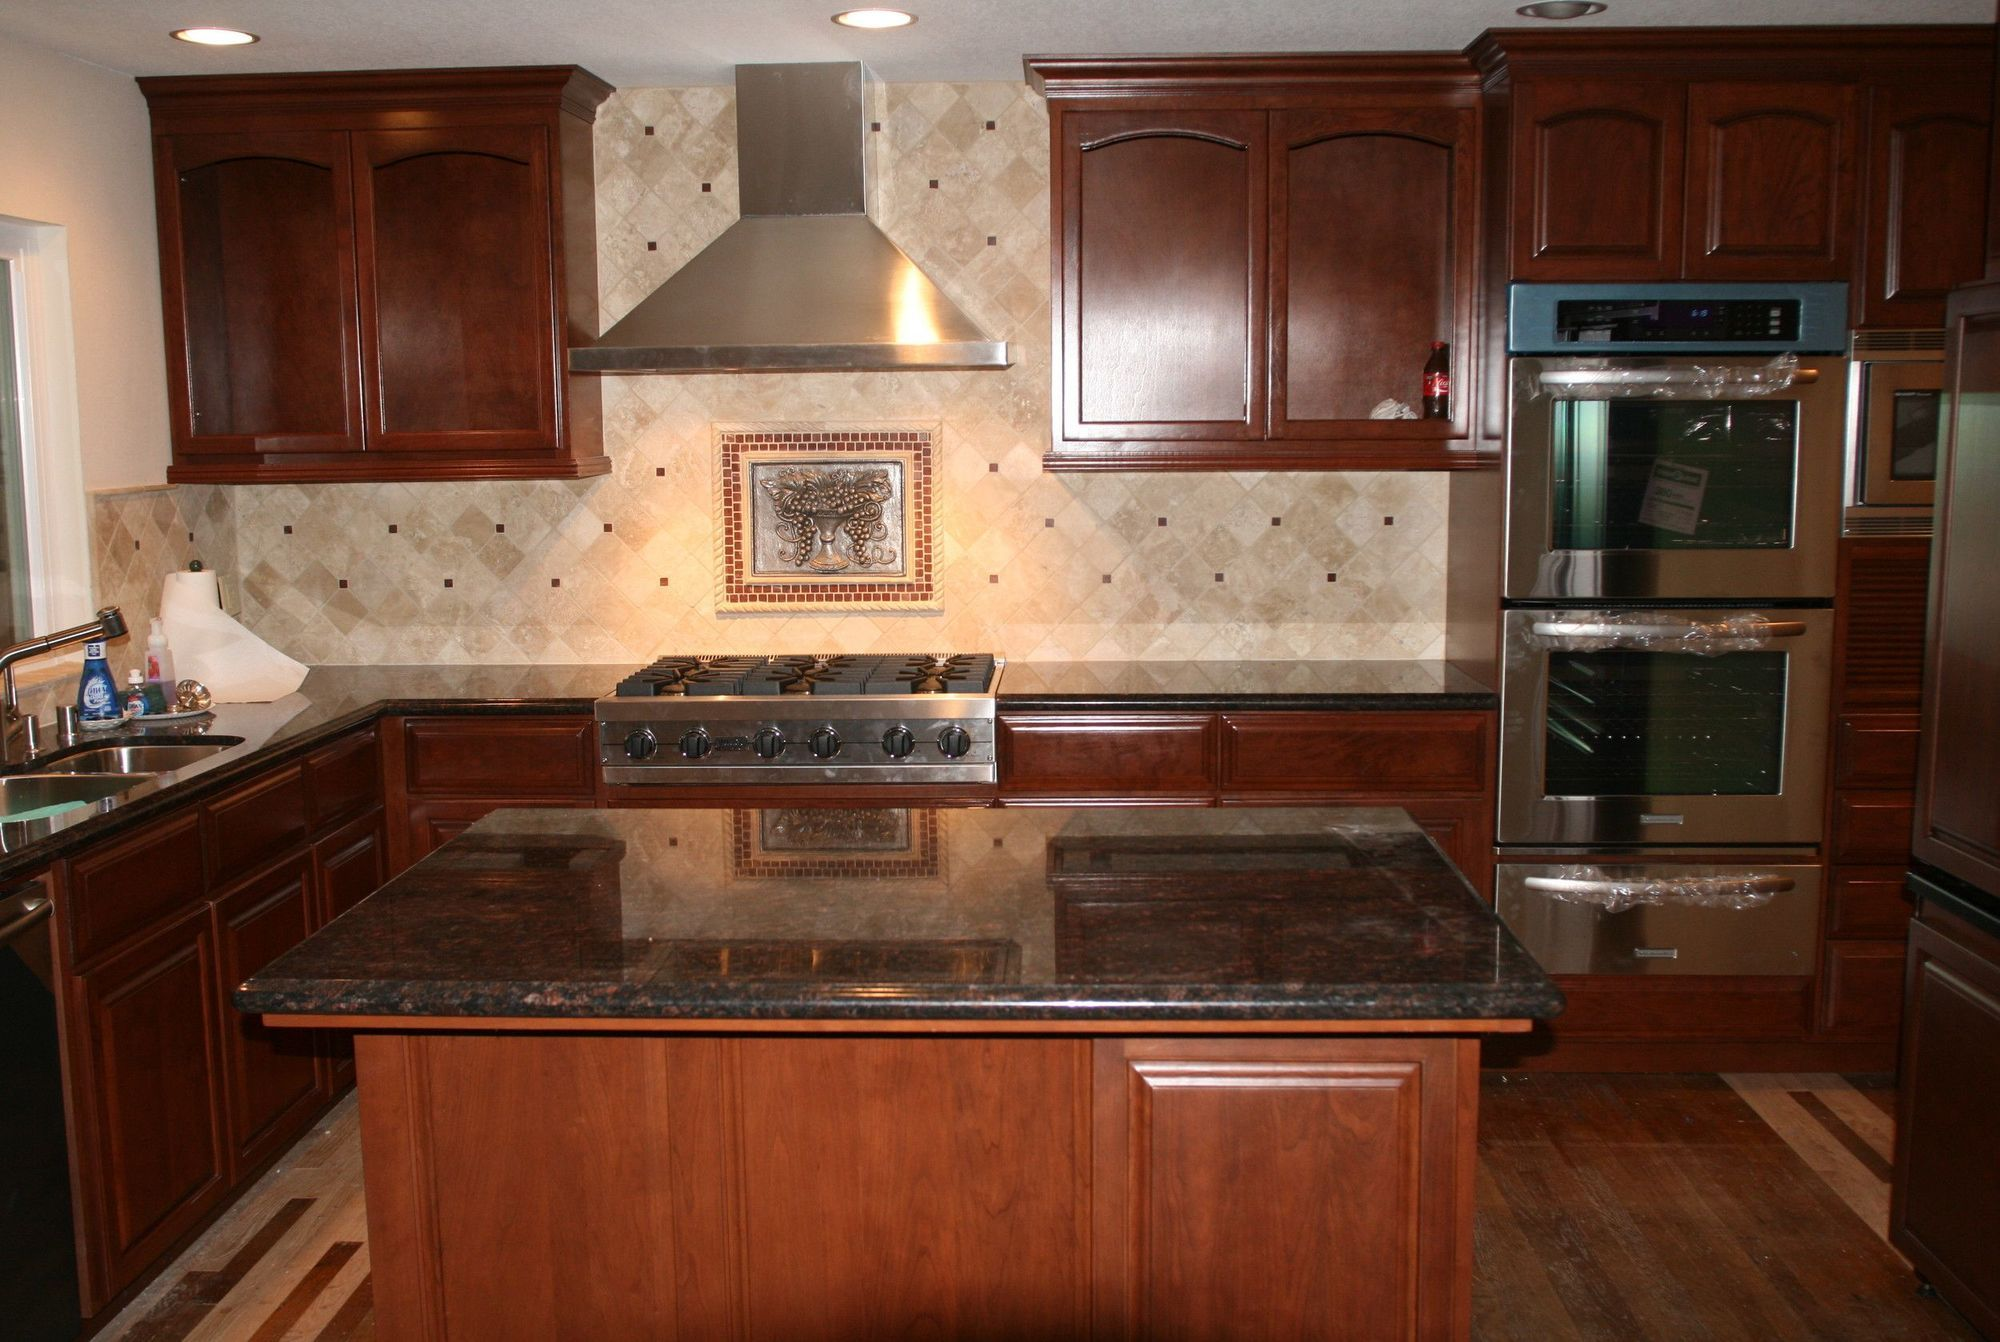 Refacing Kitchen Cabinets Cost Estimate I Ande Cabinets Inc Kitchens I Ande Cabinets Inc